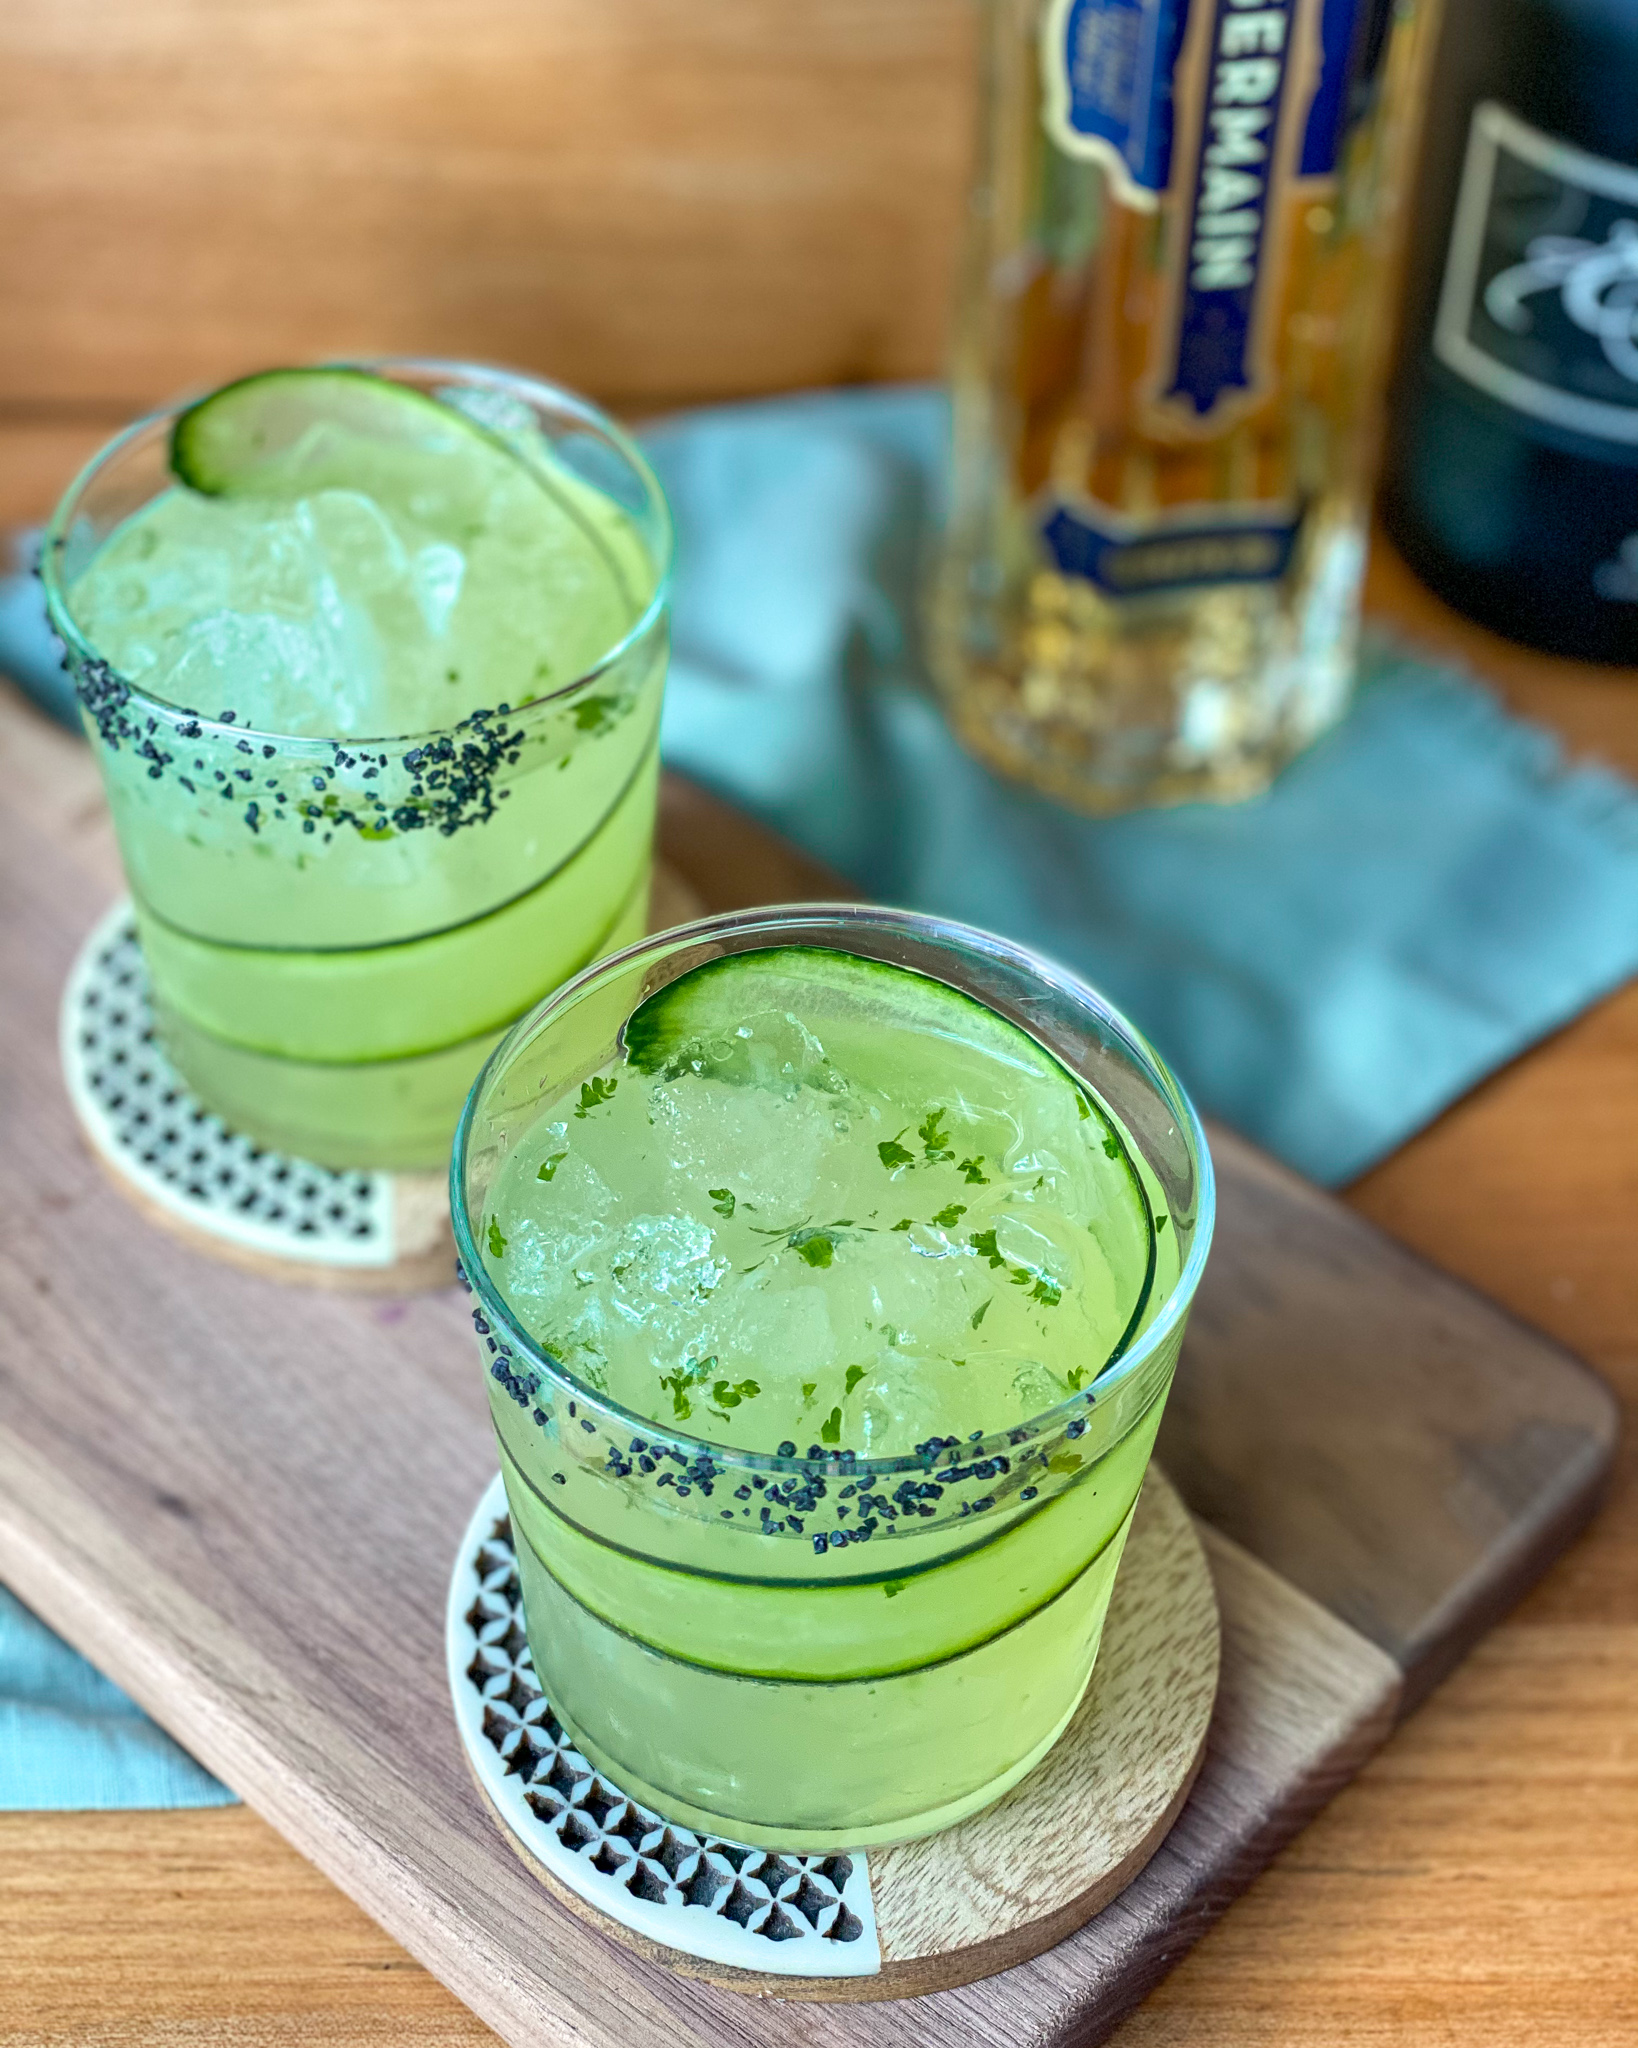 Cool, Floral, Spicy & Smoky - A Summer Margarita Glow Up